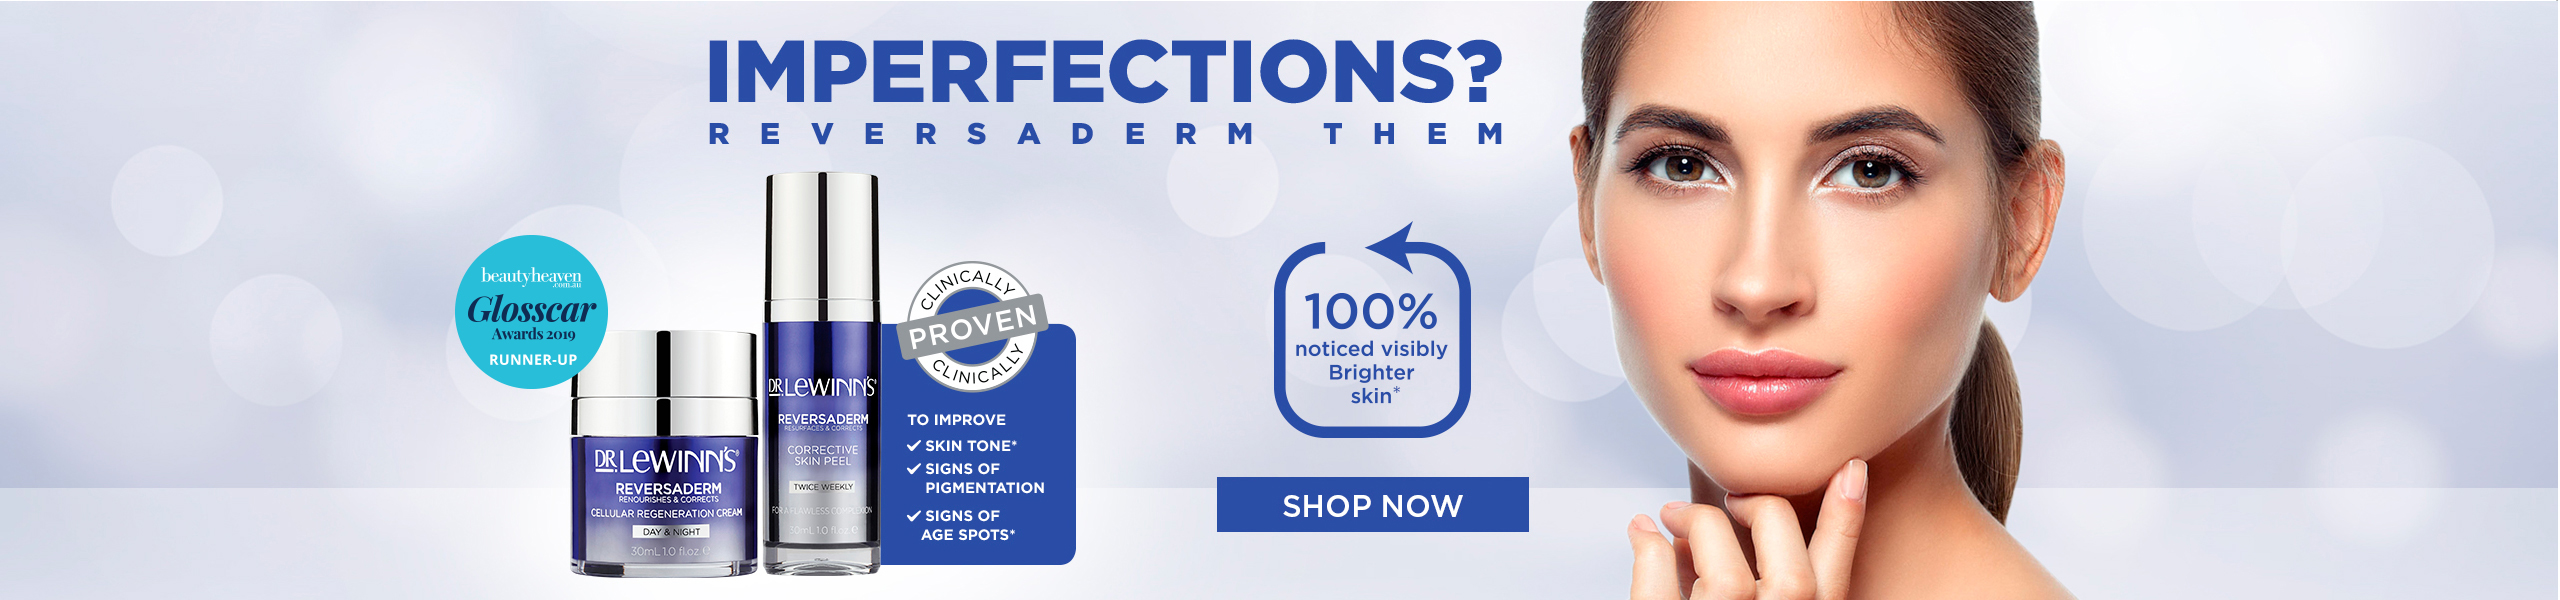 Imperfections? Reversaderm them! Clinically proven to improve skin tone, signs of pigmentation and signs of age spots.